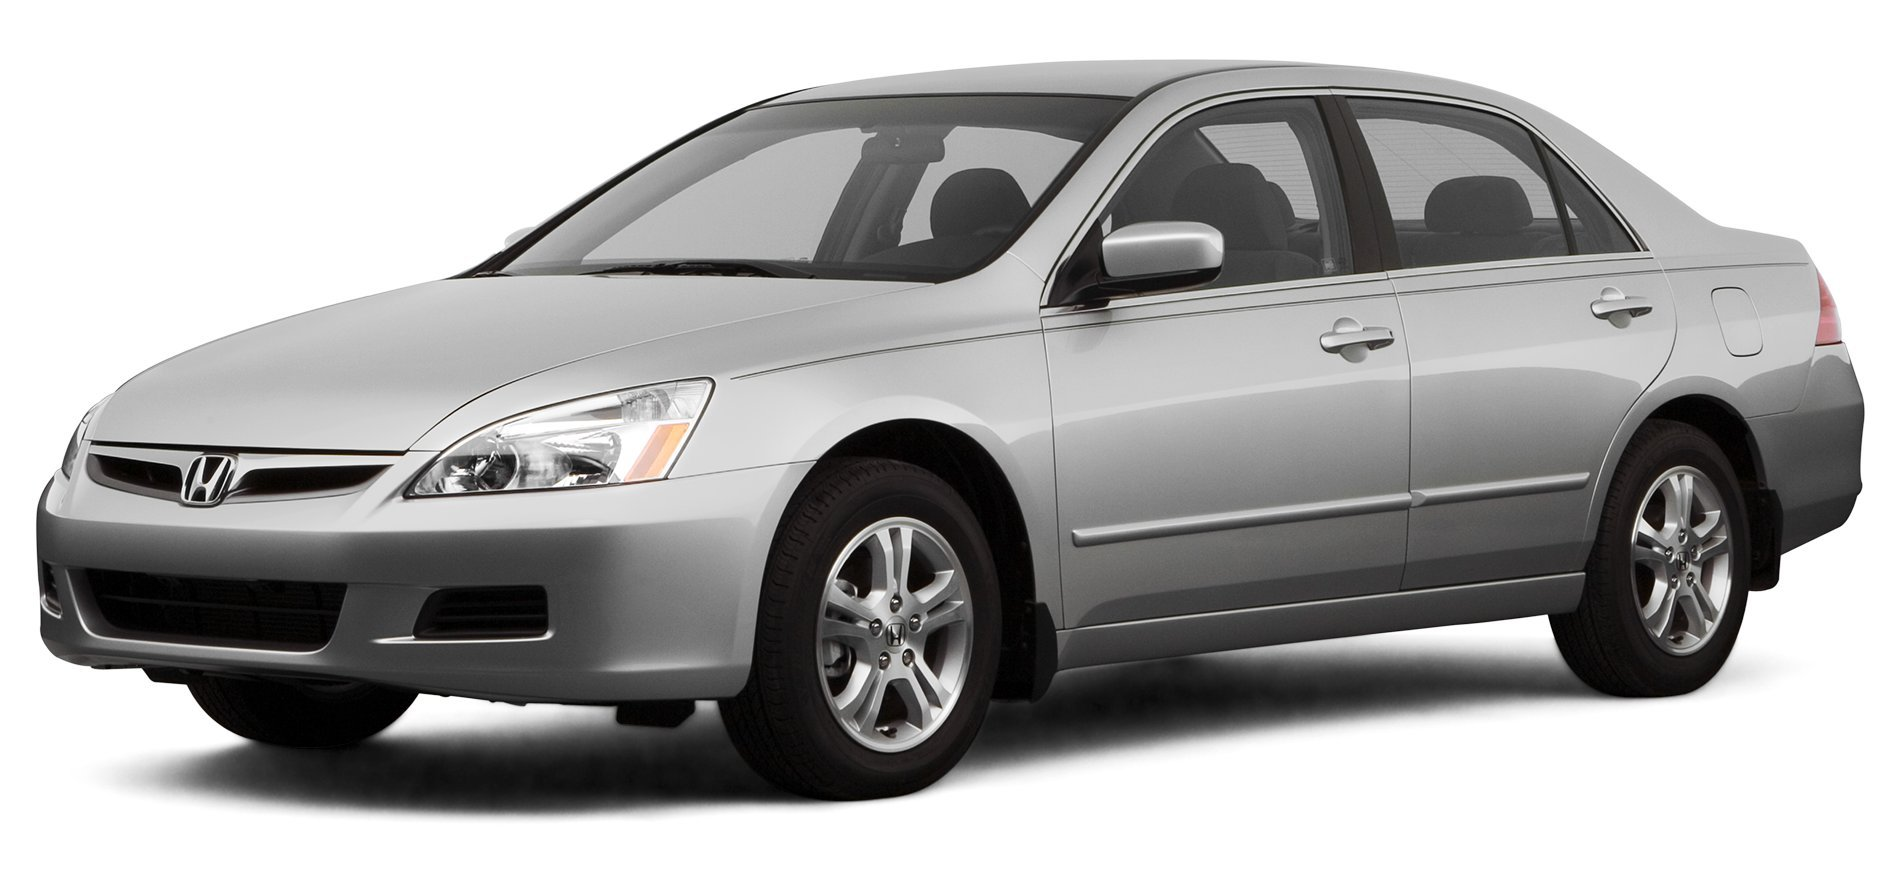 2007 honda civic reviews images and specs for Honda accord 4 cylinder